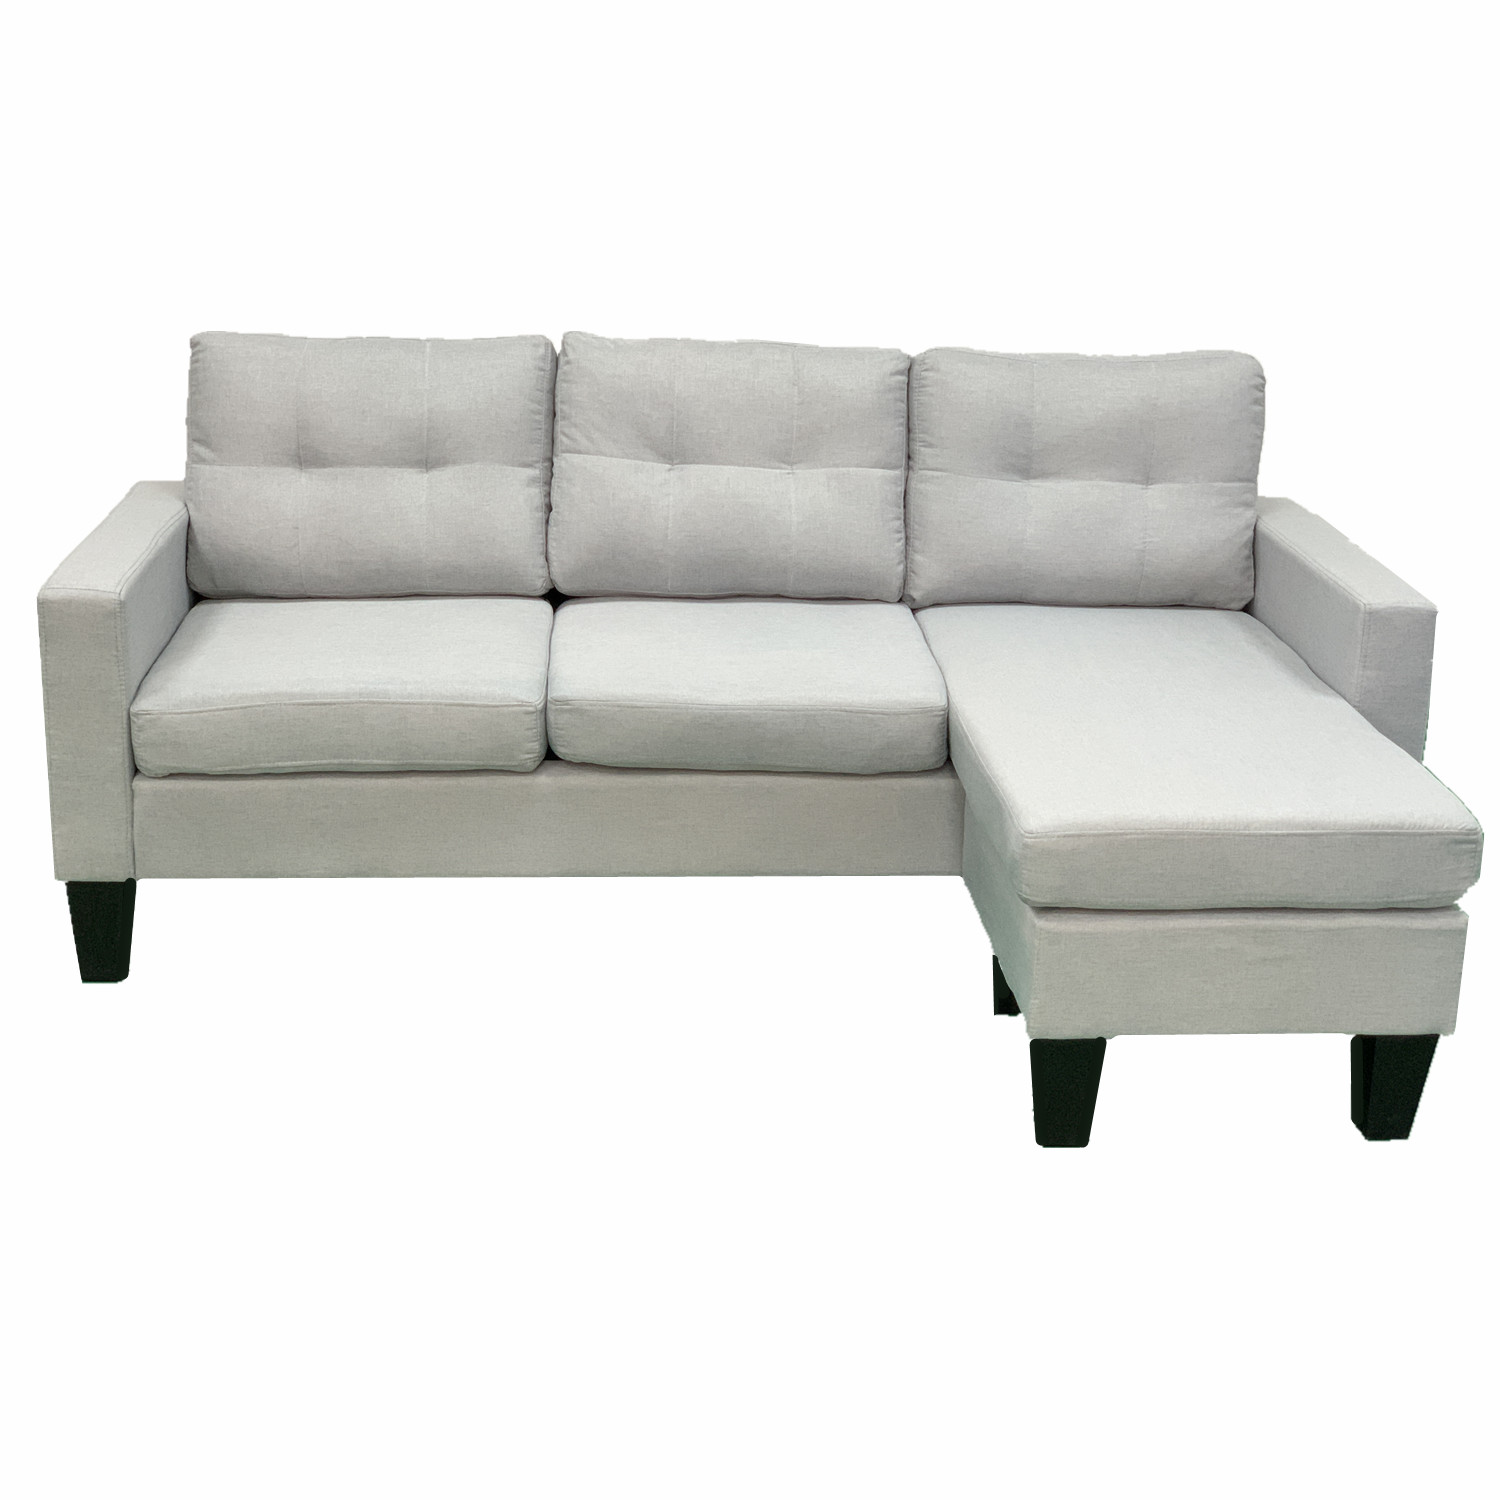 Light Grey Cushioned Convertible Sofa Bed With Chaise Living Room Couch BT1709LG